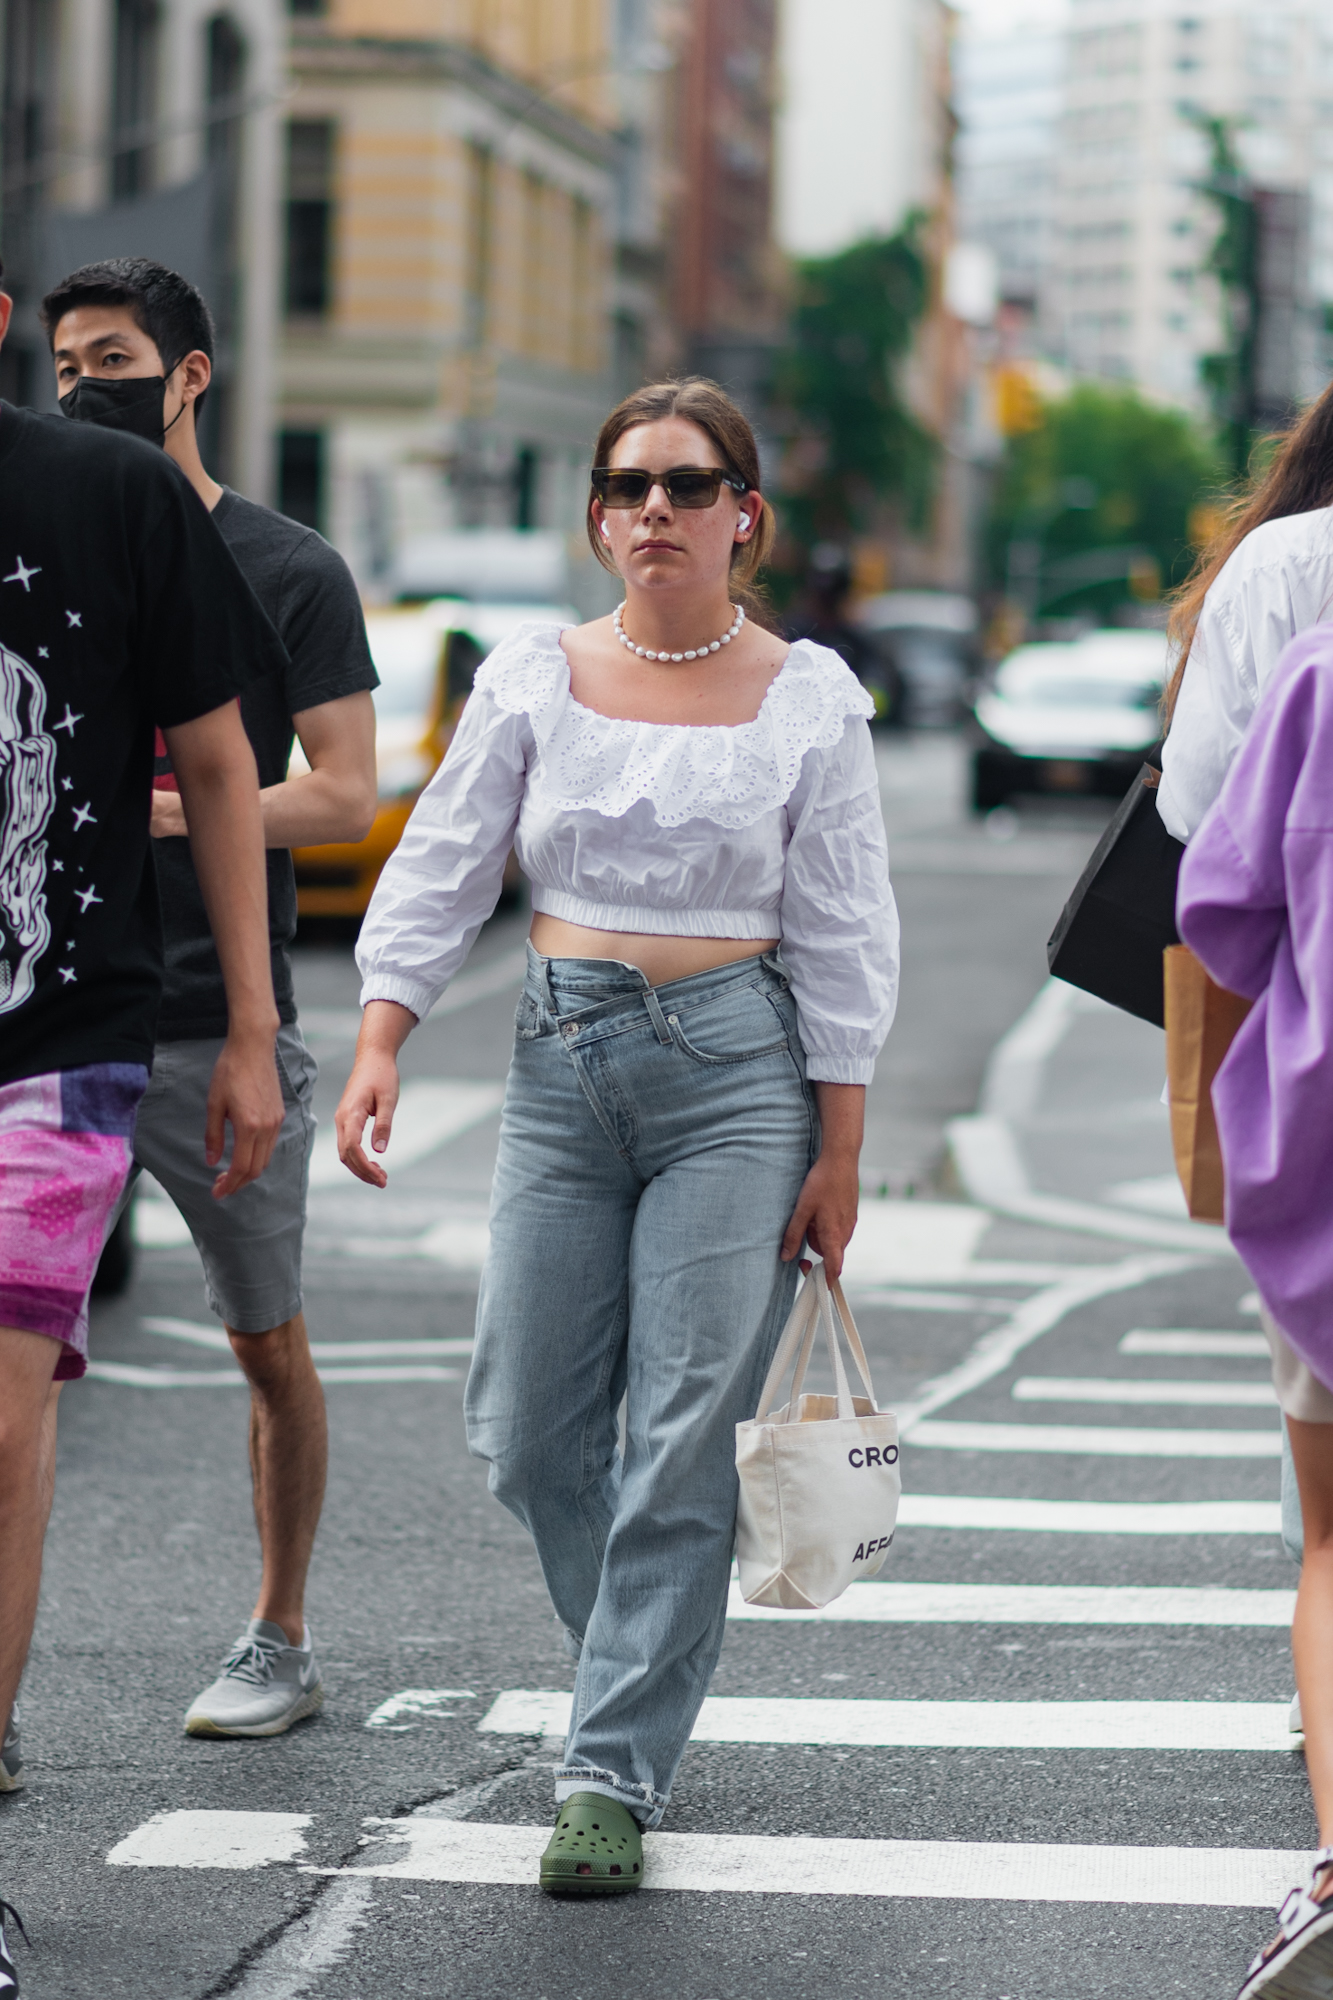 NYC street style fall outfit idea - woman wearing trendy white blouse and straight leg jeans in SoHo - Karya Schanilec NYC fashion photographer